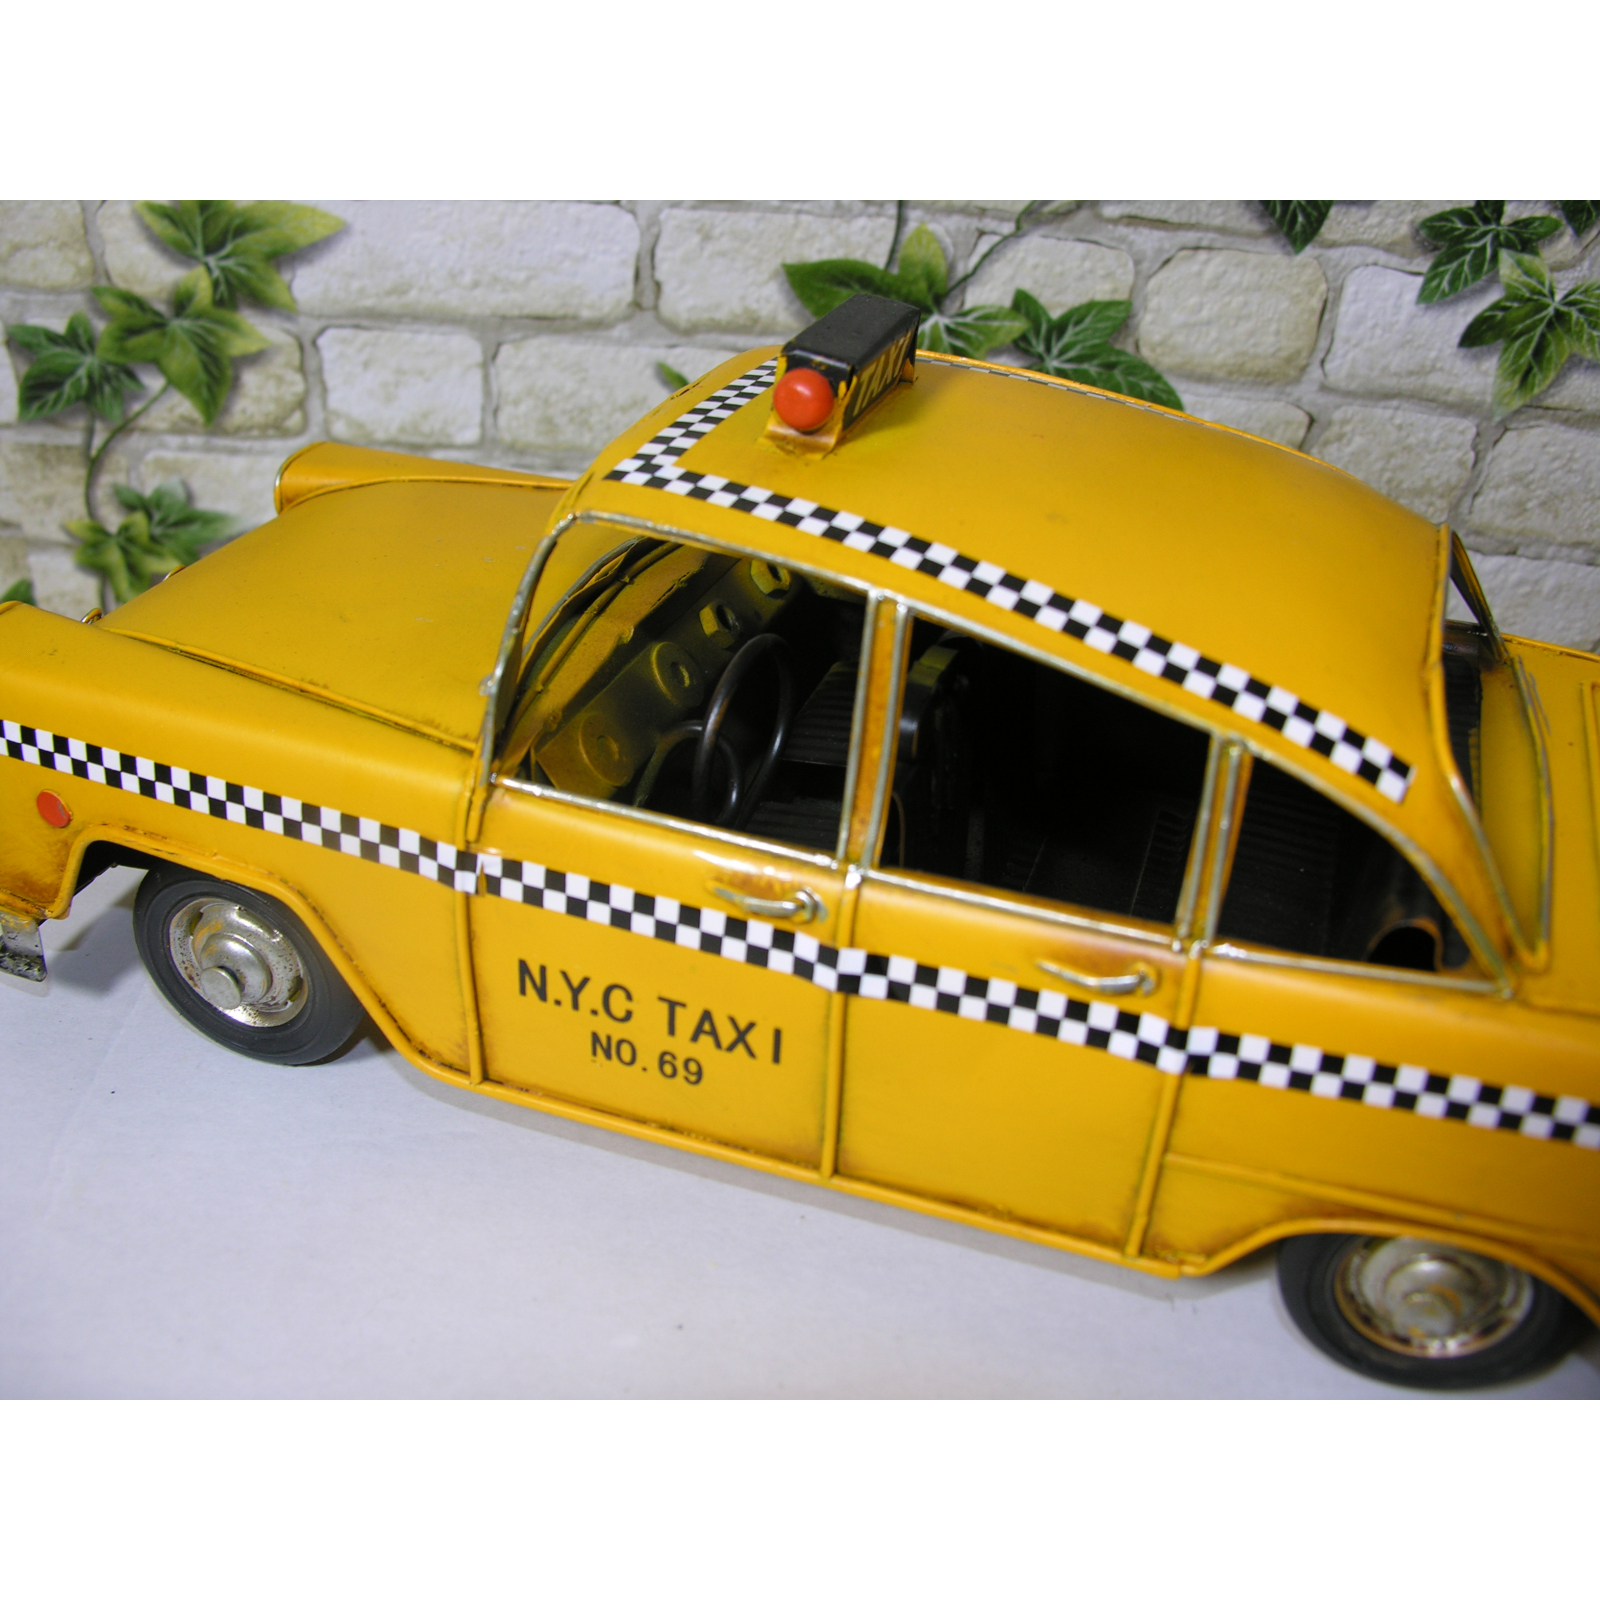 gelbes New York Taxi NYC Cadilac DeVille Blechmodell Metall Modell Oldtimer Auto